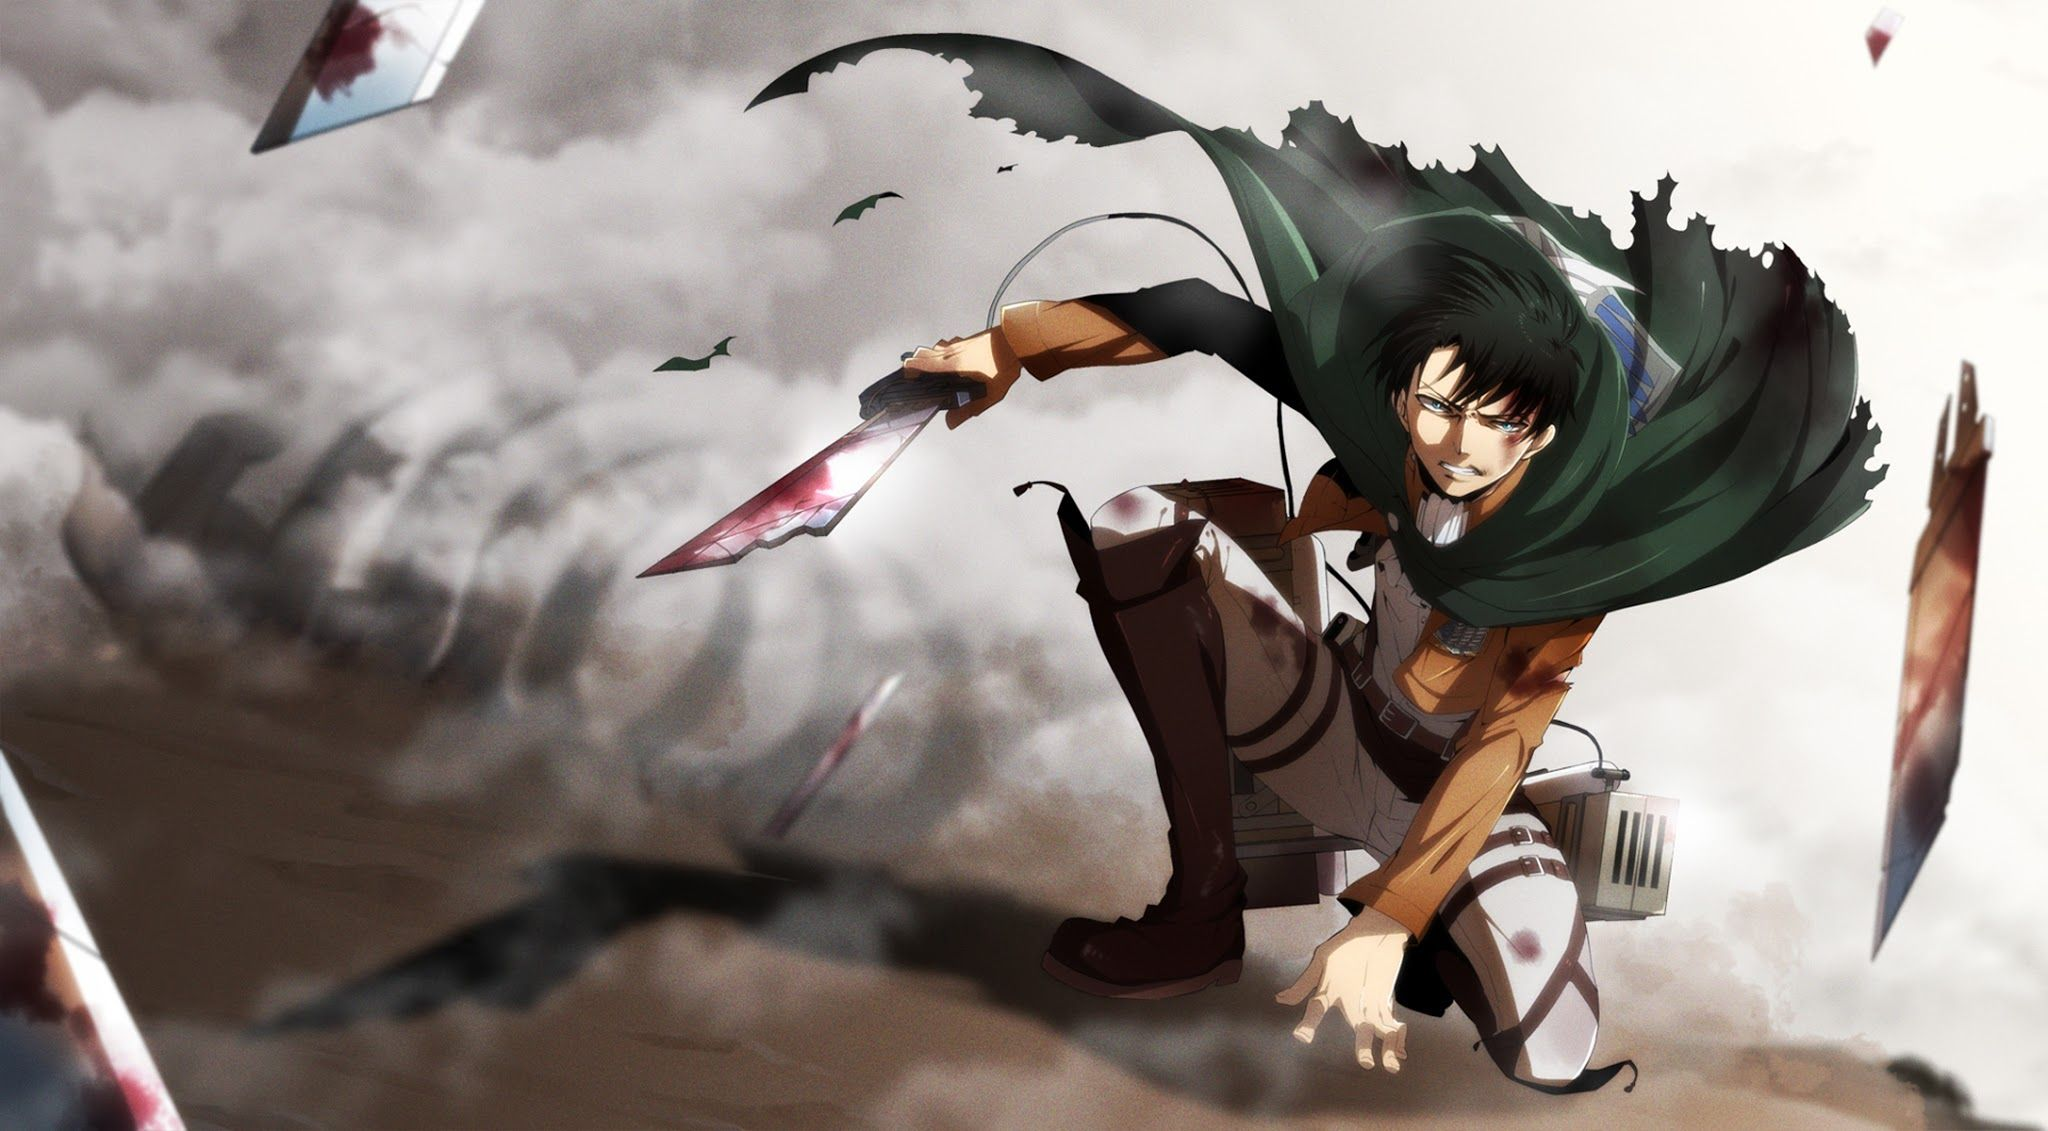 titans red shingeki no - photo #45